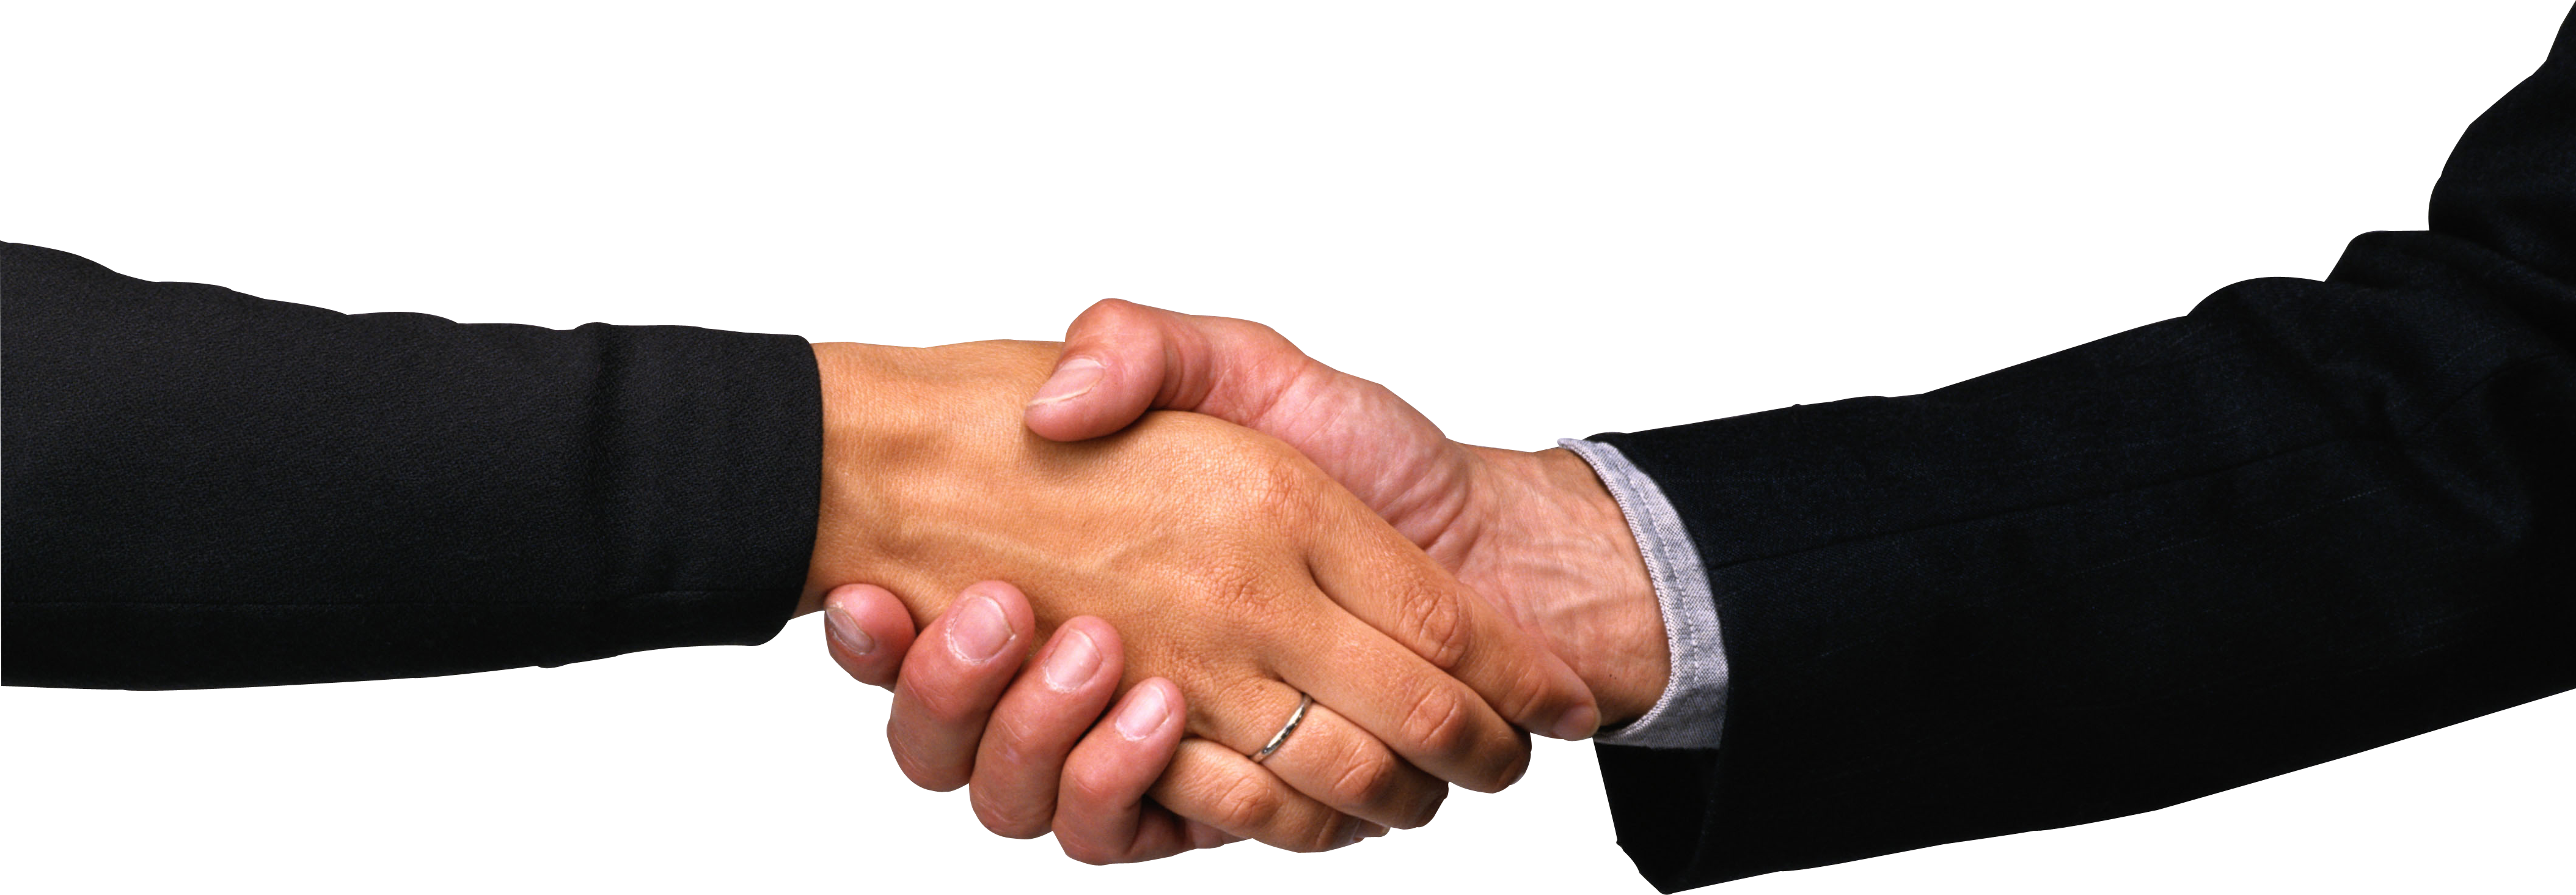 Handshake clipart day. Hands png image purepng